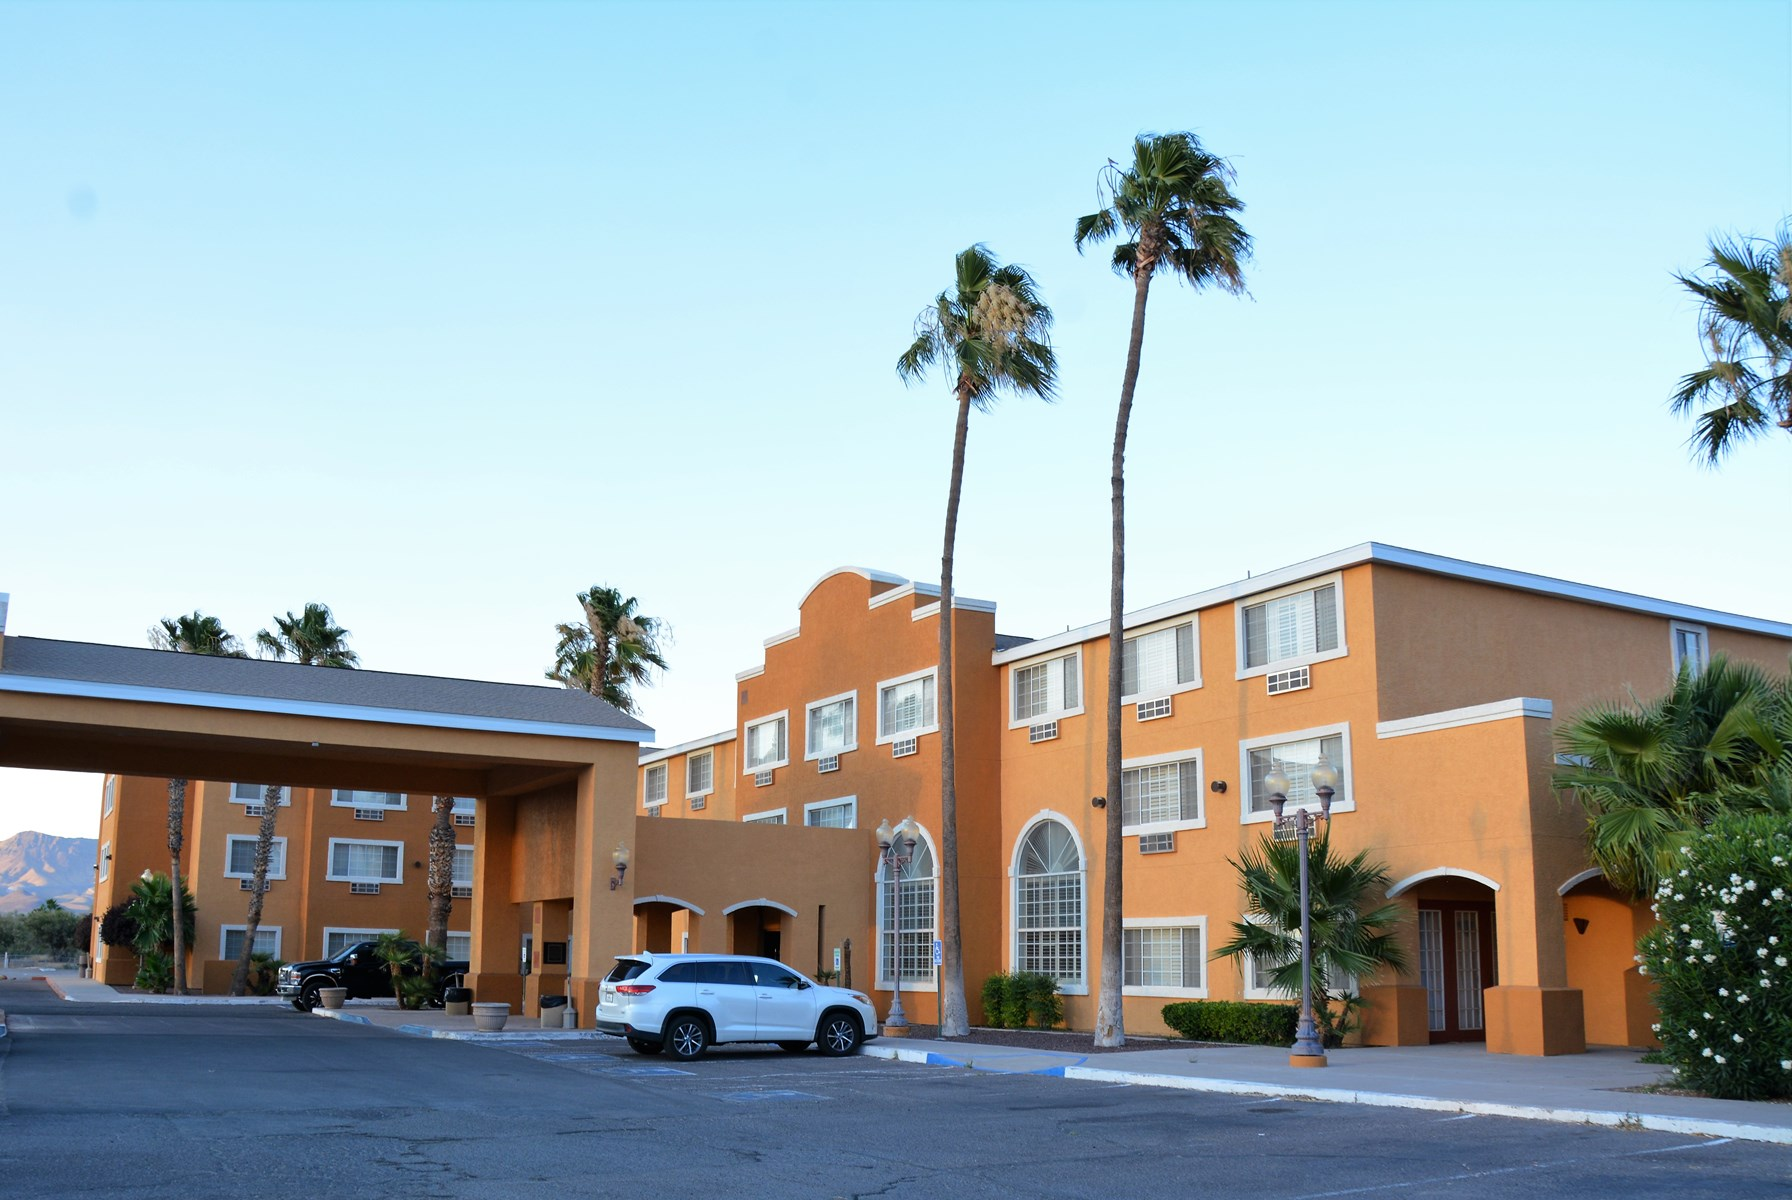 Hotel For sale in Arizona UC Commercial Real Estate